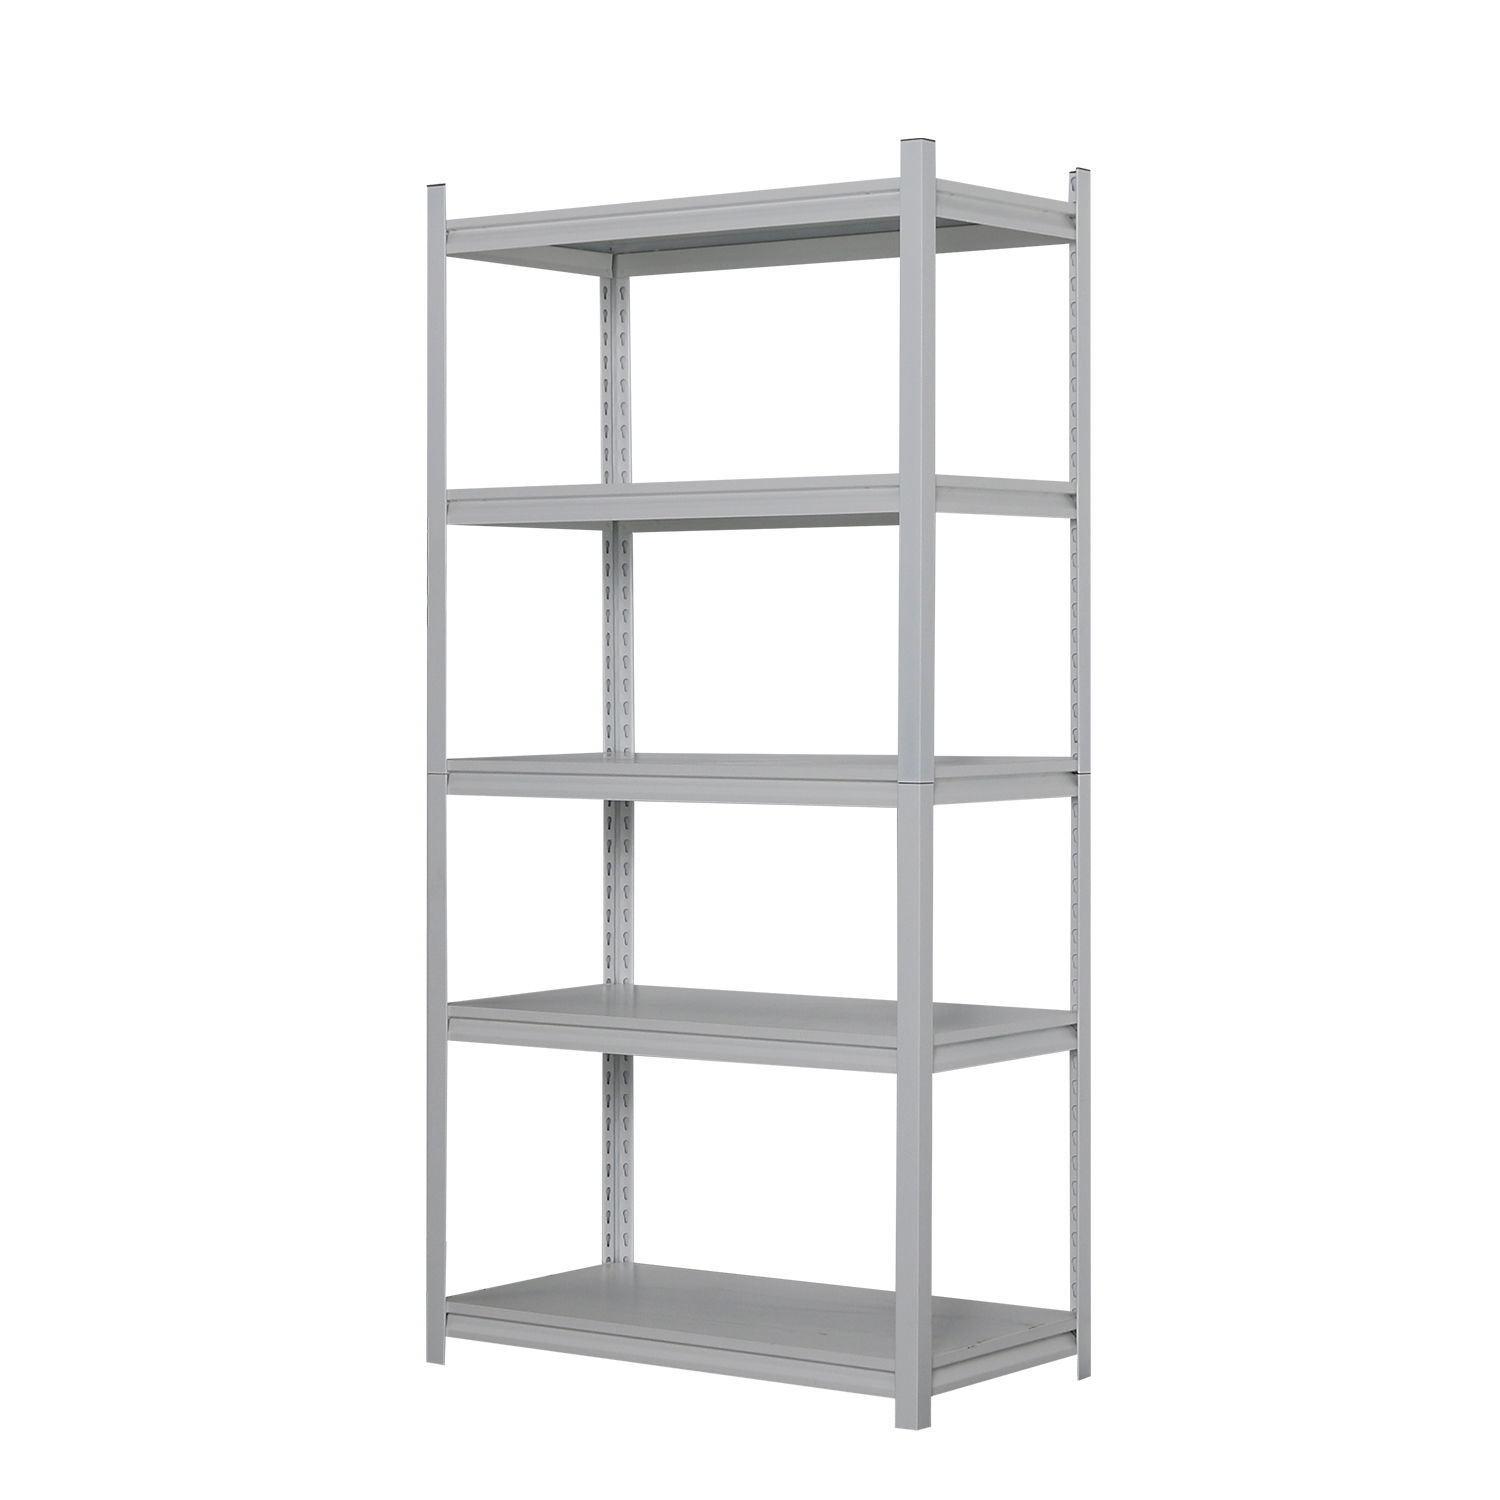 Image 72 x 36 (5-Shelves) Shelving Unit - White